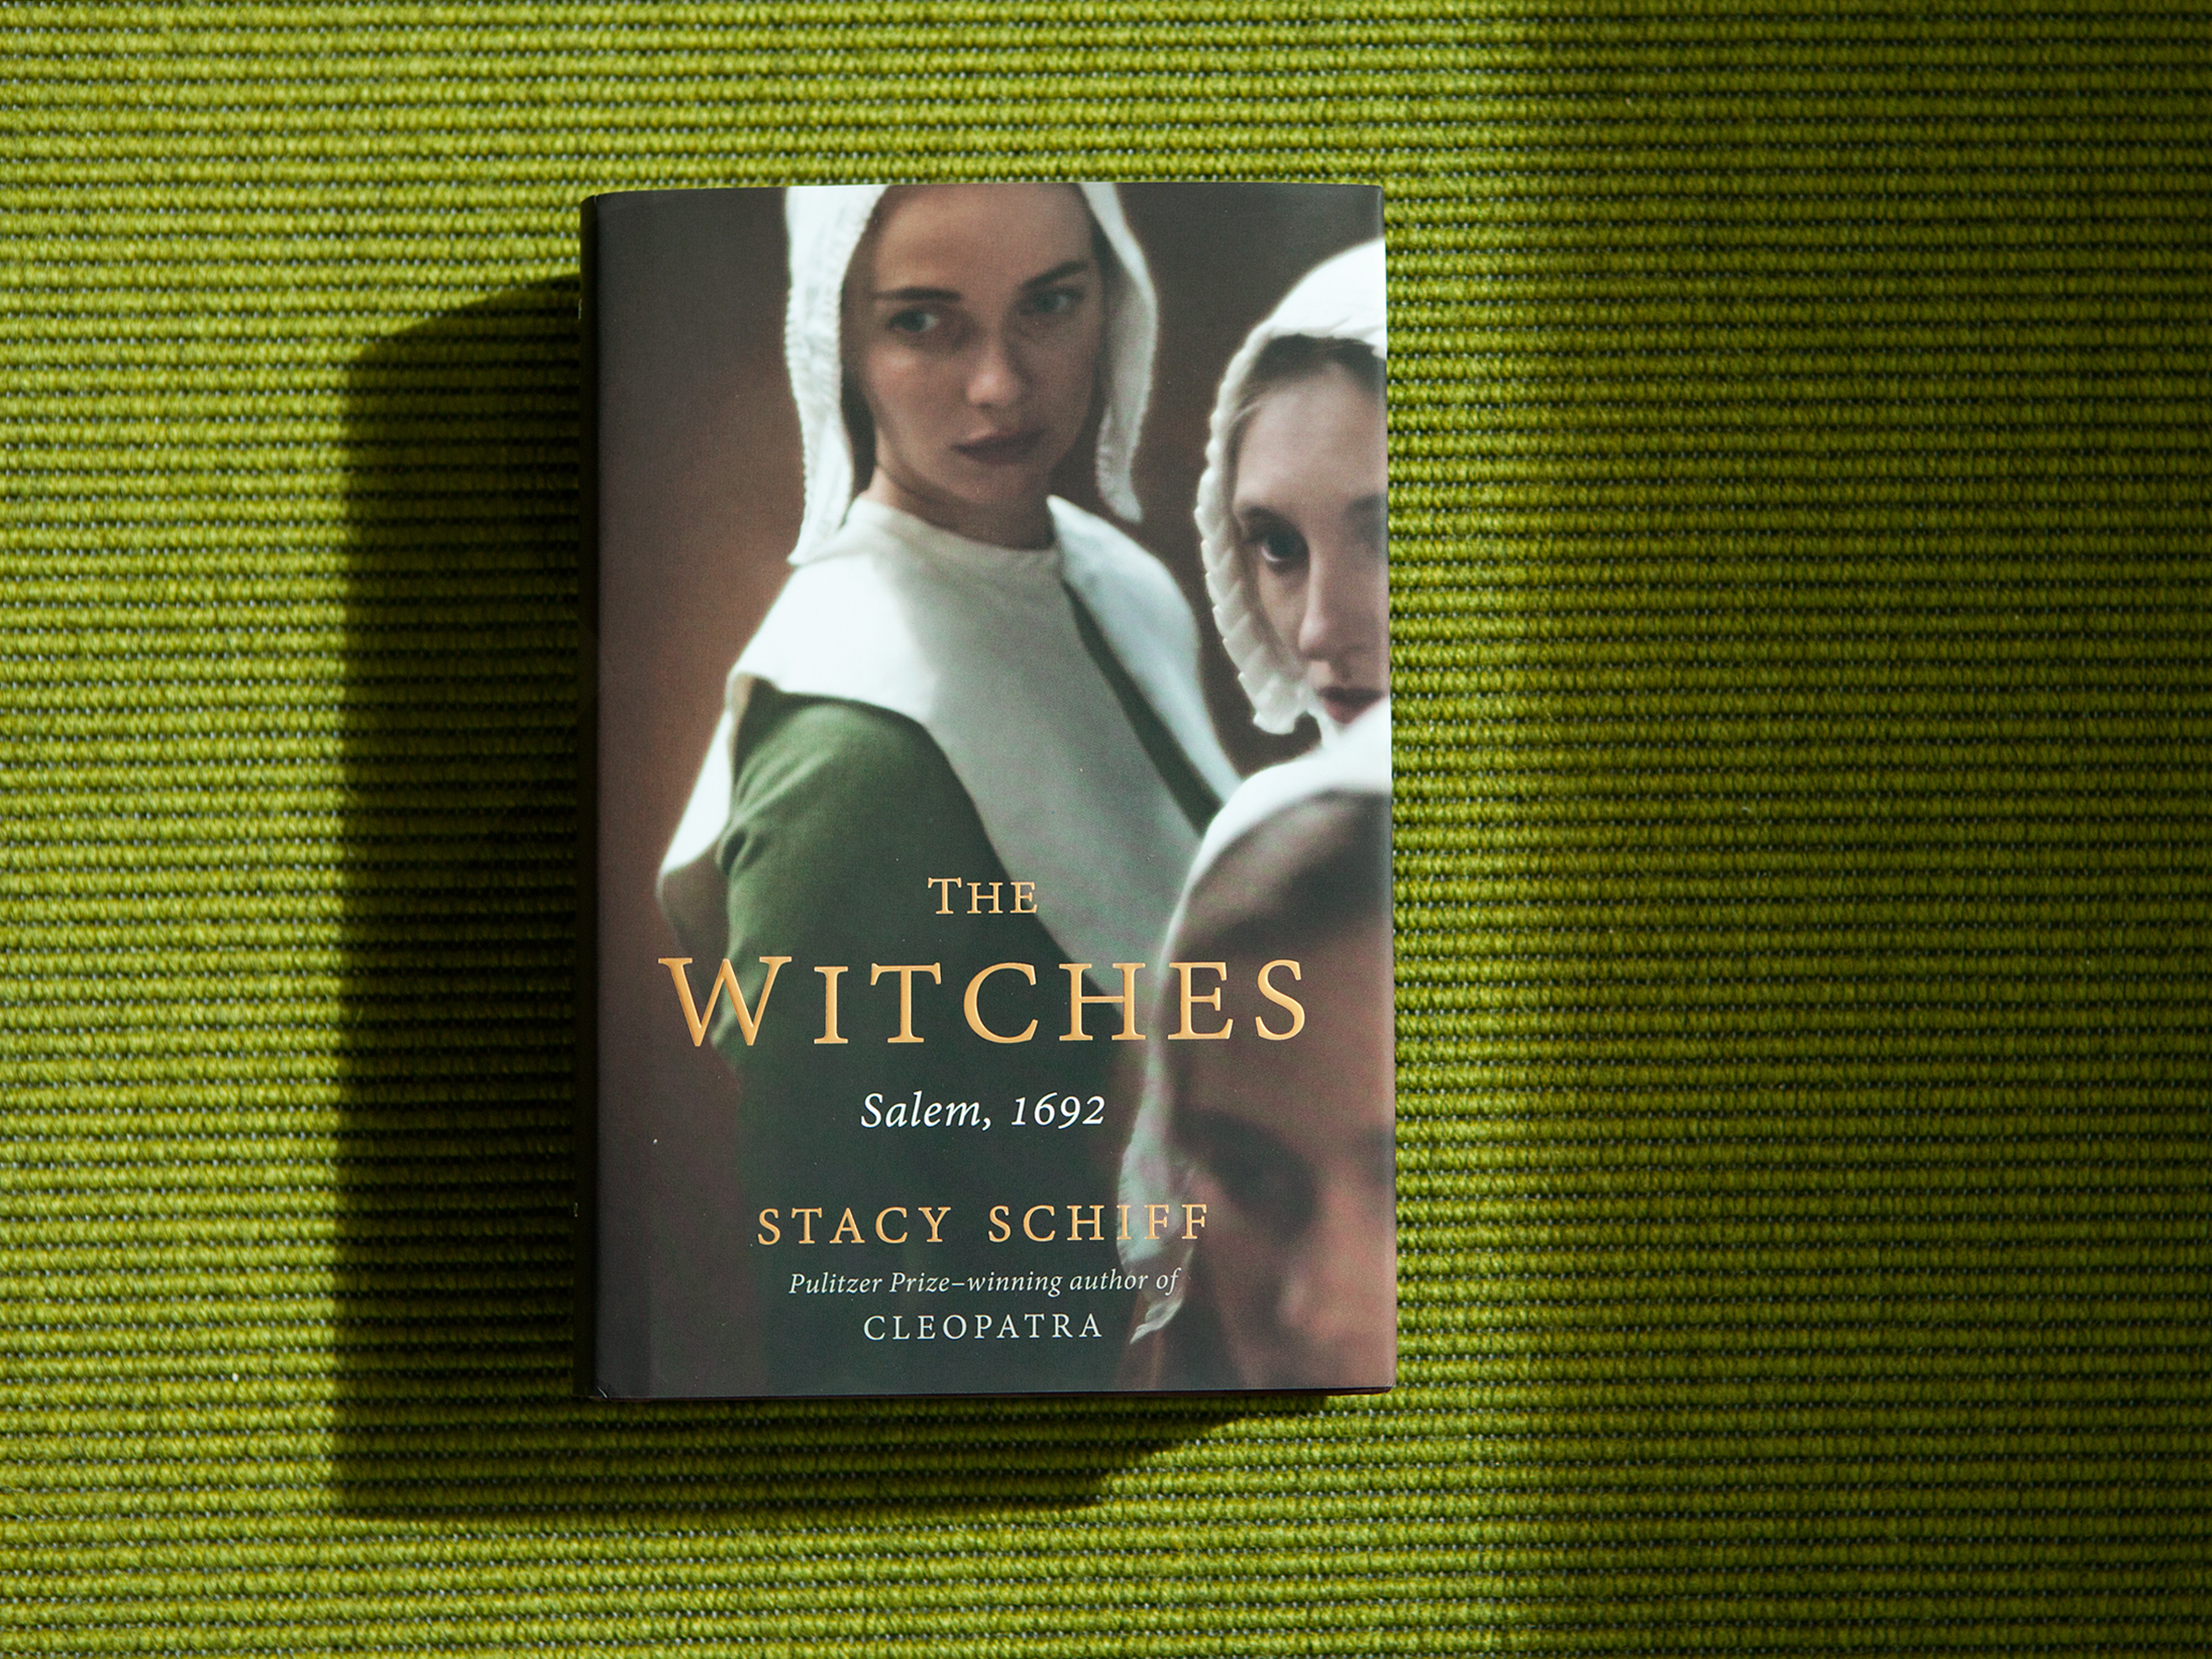 The madness in the salem witch trials